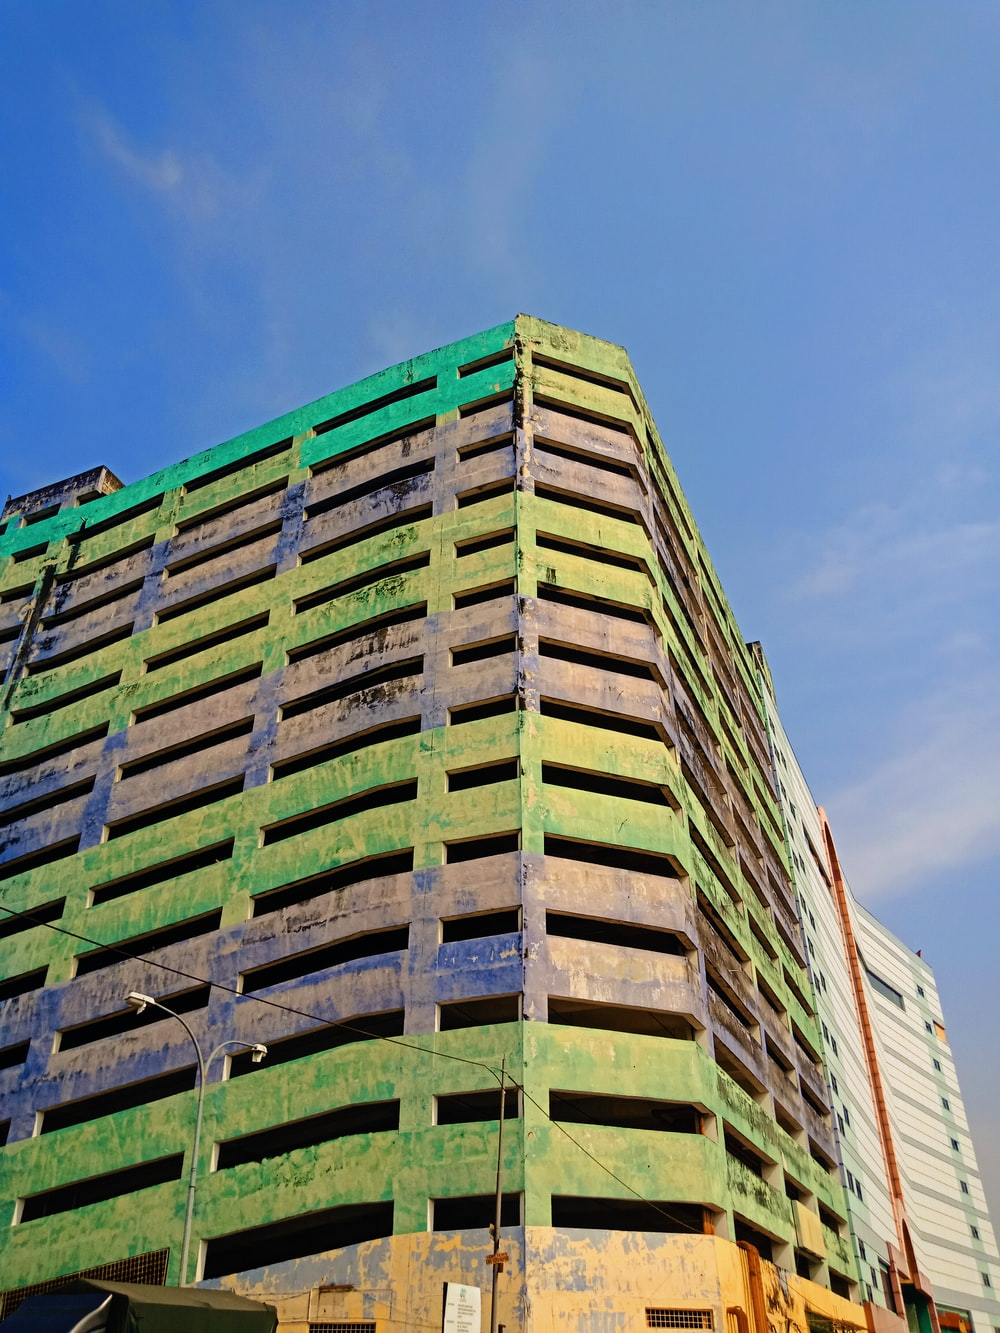 green and white concrete building under blue sky during daytime